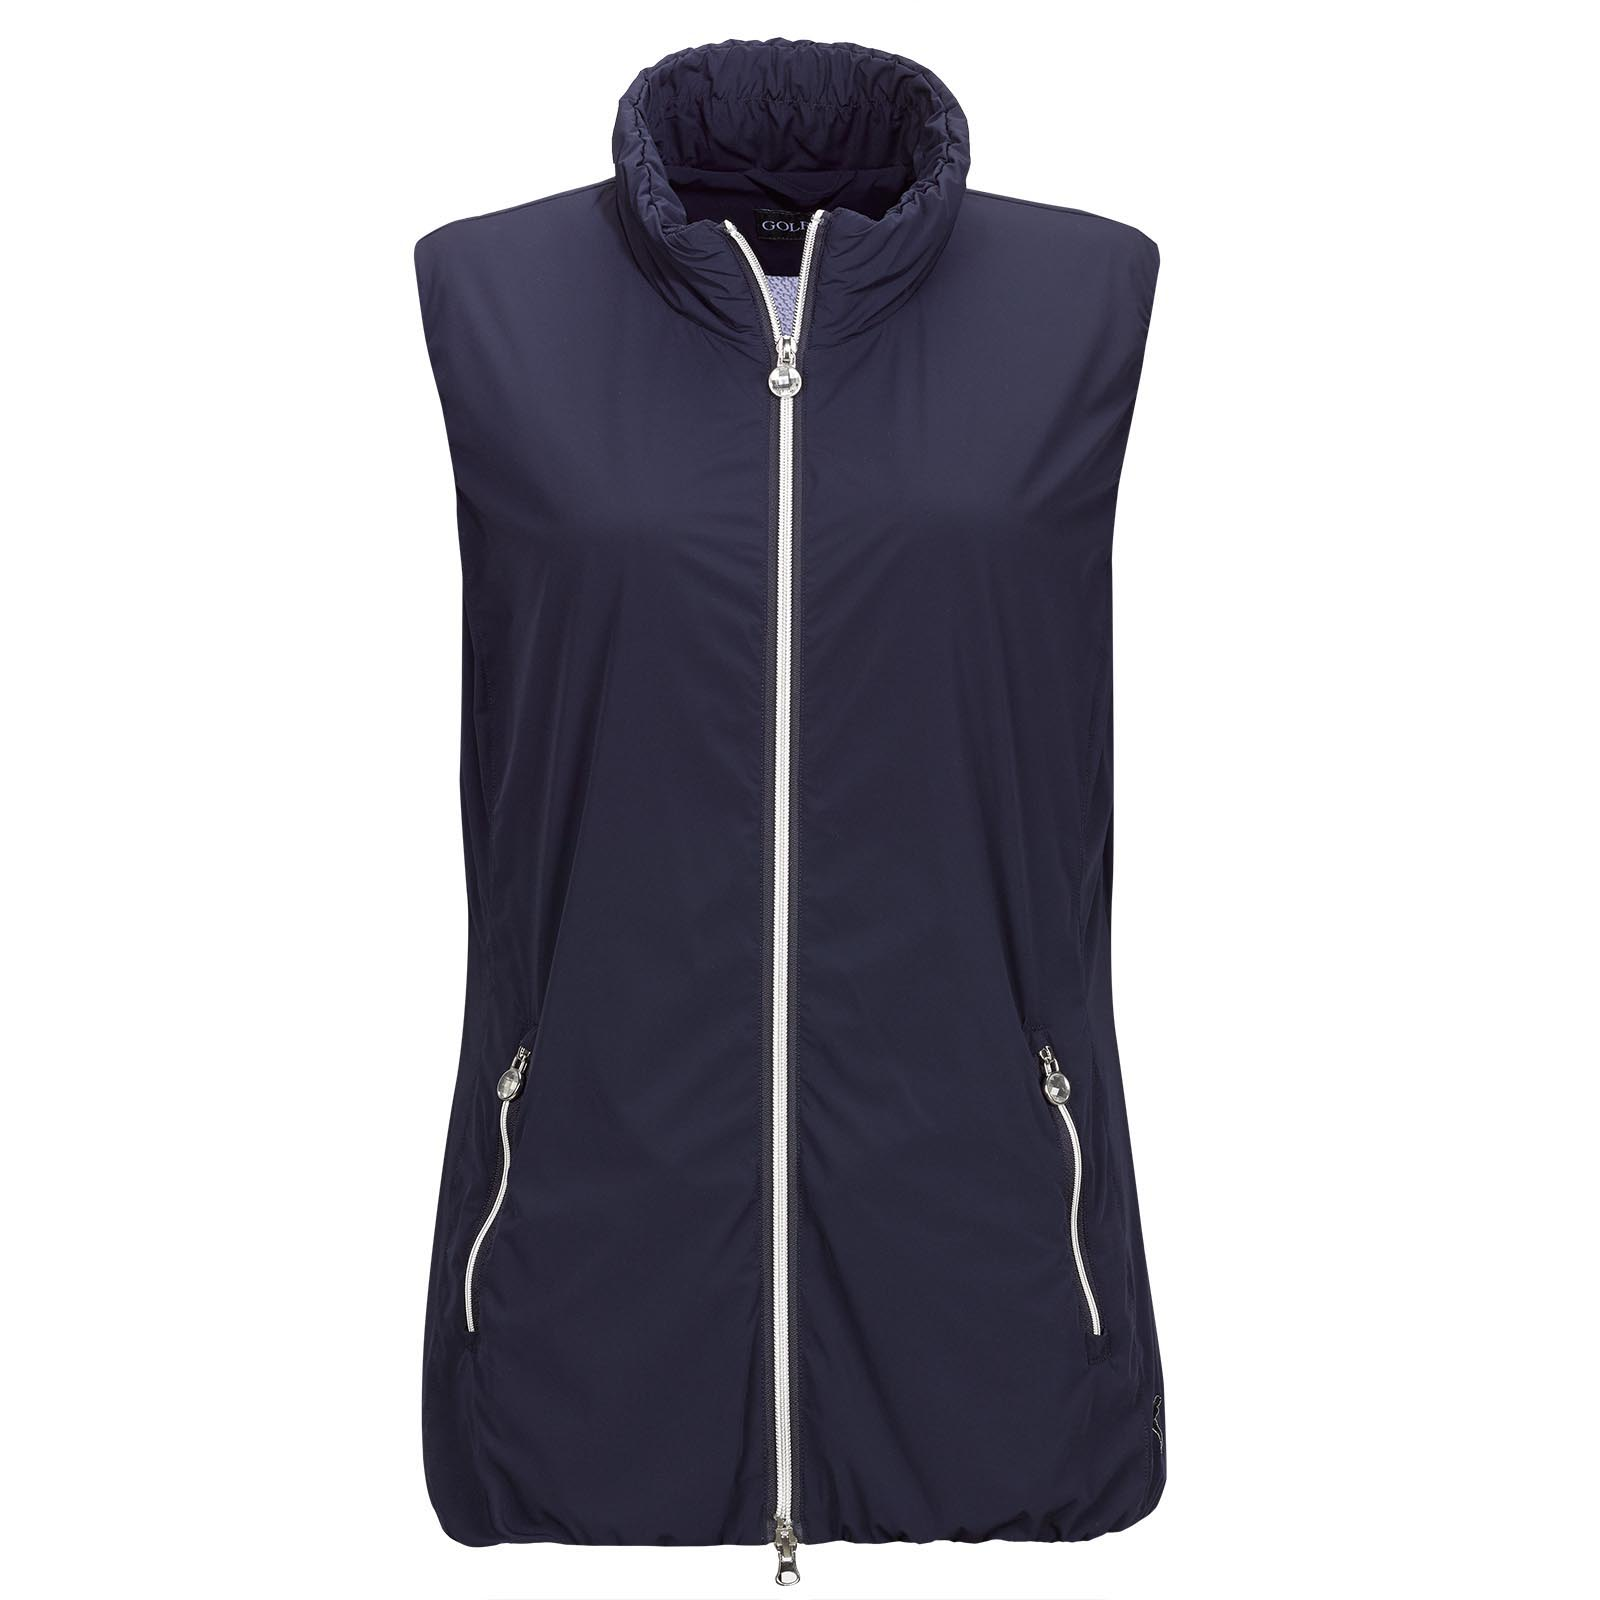 Ladies' golf waistcoat made from elastic micro-stretch fabric with mesh lining